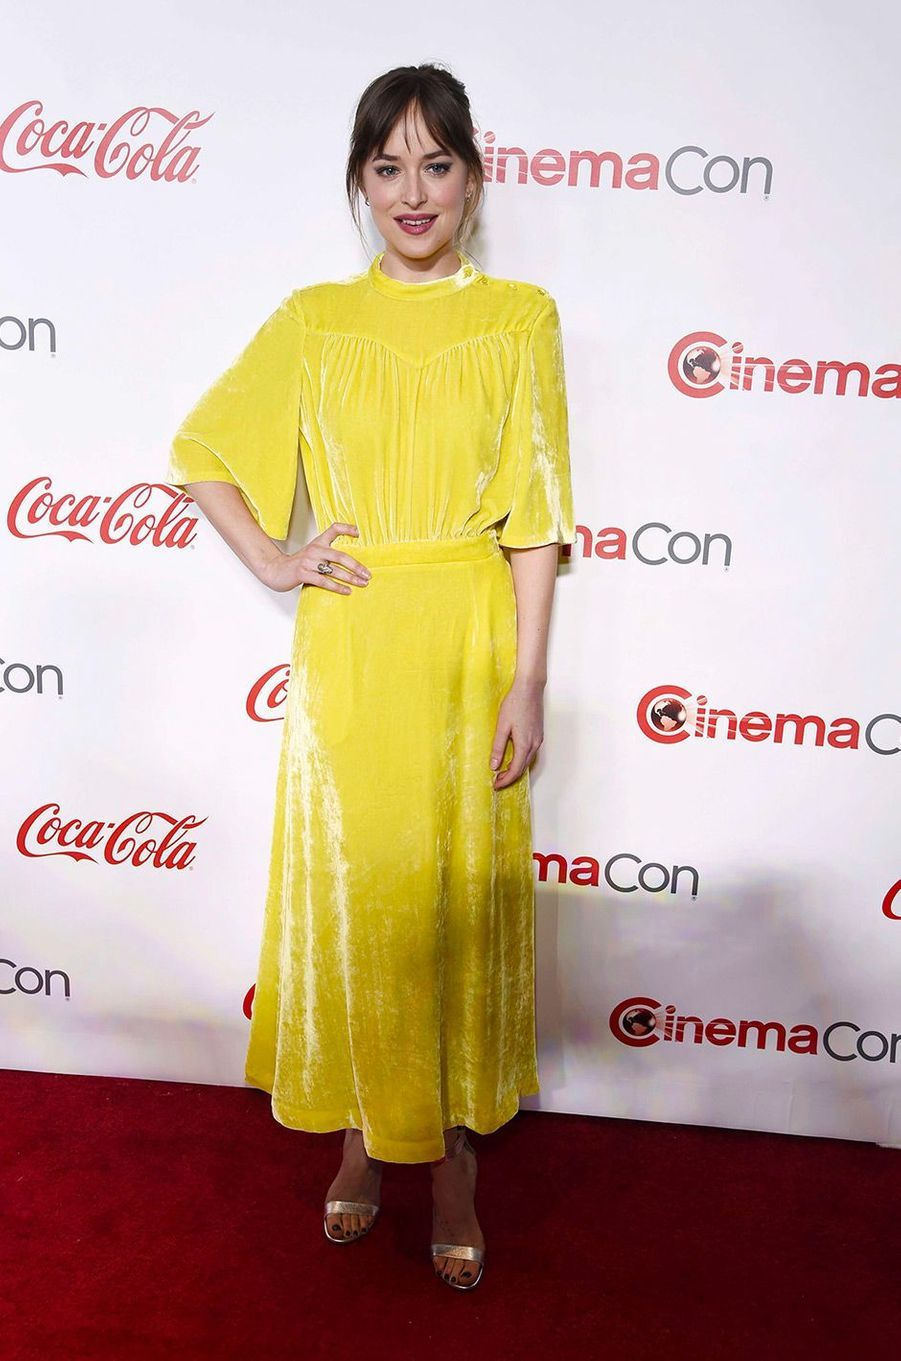 Dakota Johnson au CinemaCon de Las Vegas, jeudi 26 avril 2018